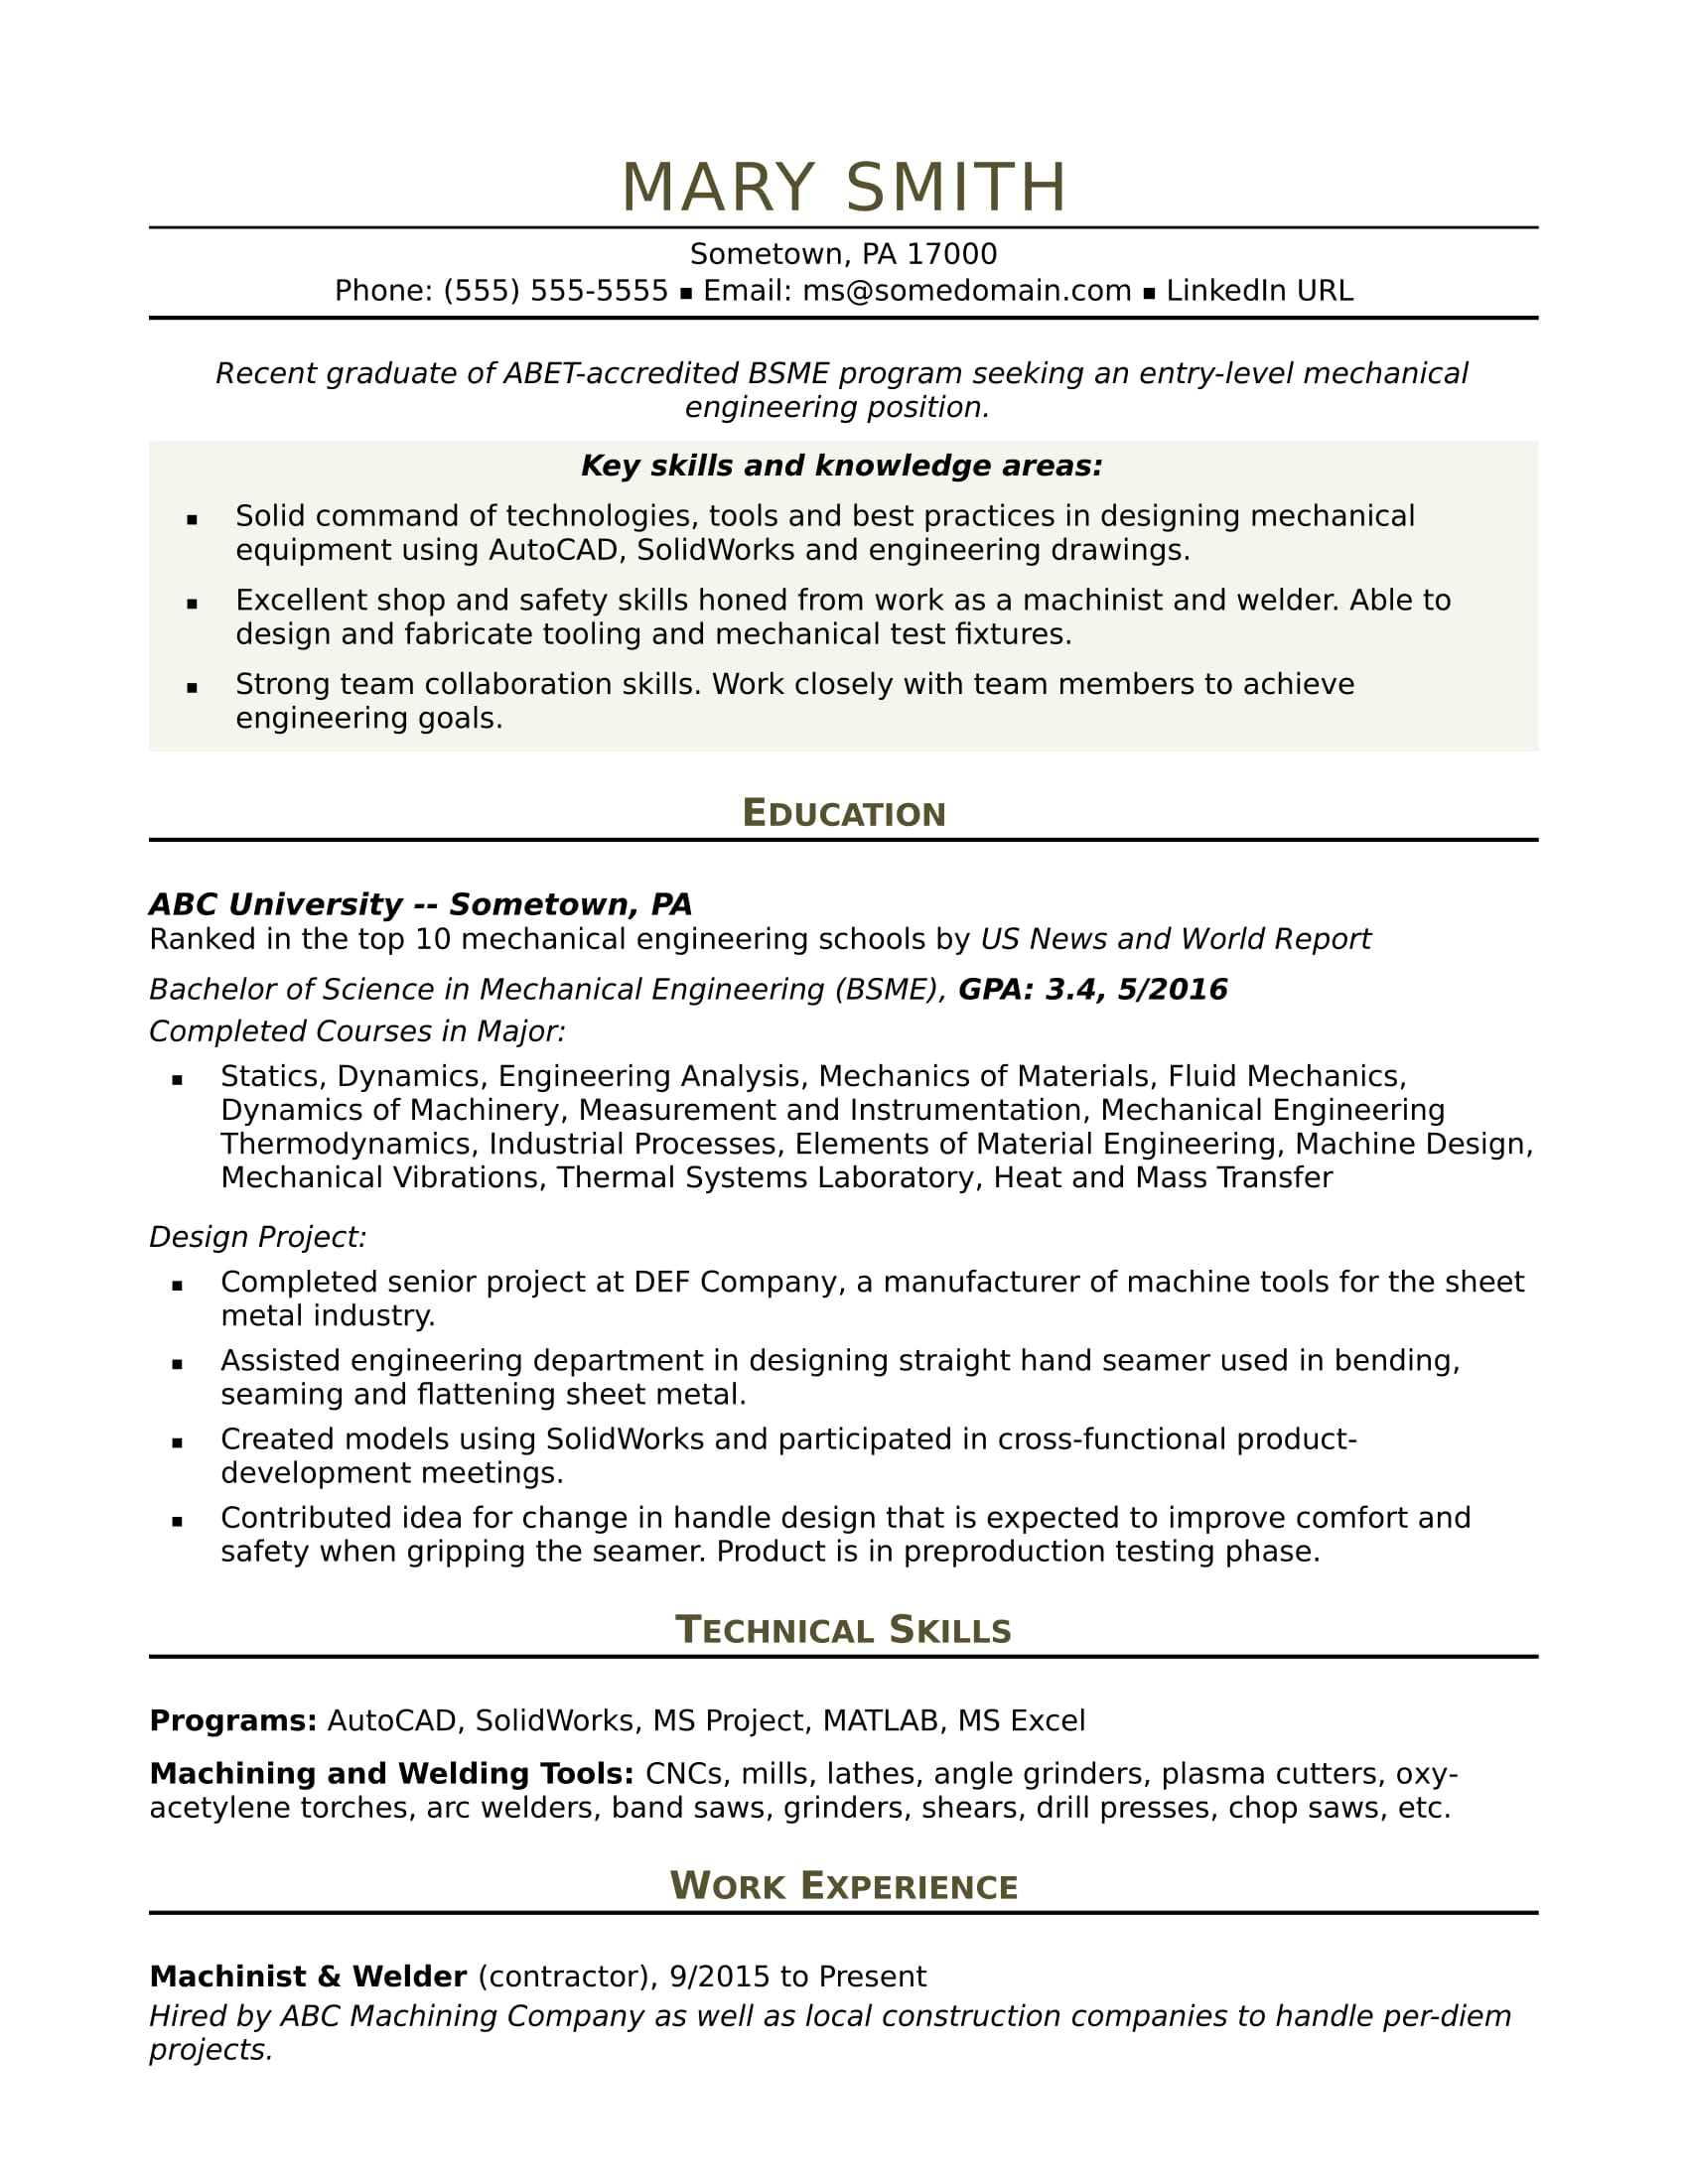 Resume Examples Engineering Sample Resume For An Entry Level Mechanical Engineer